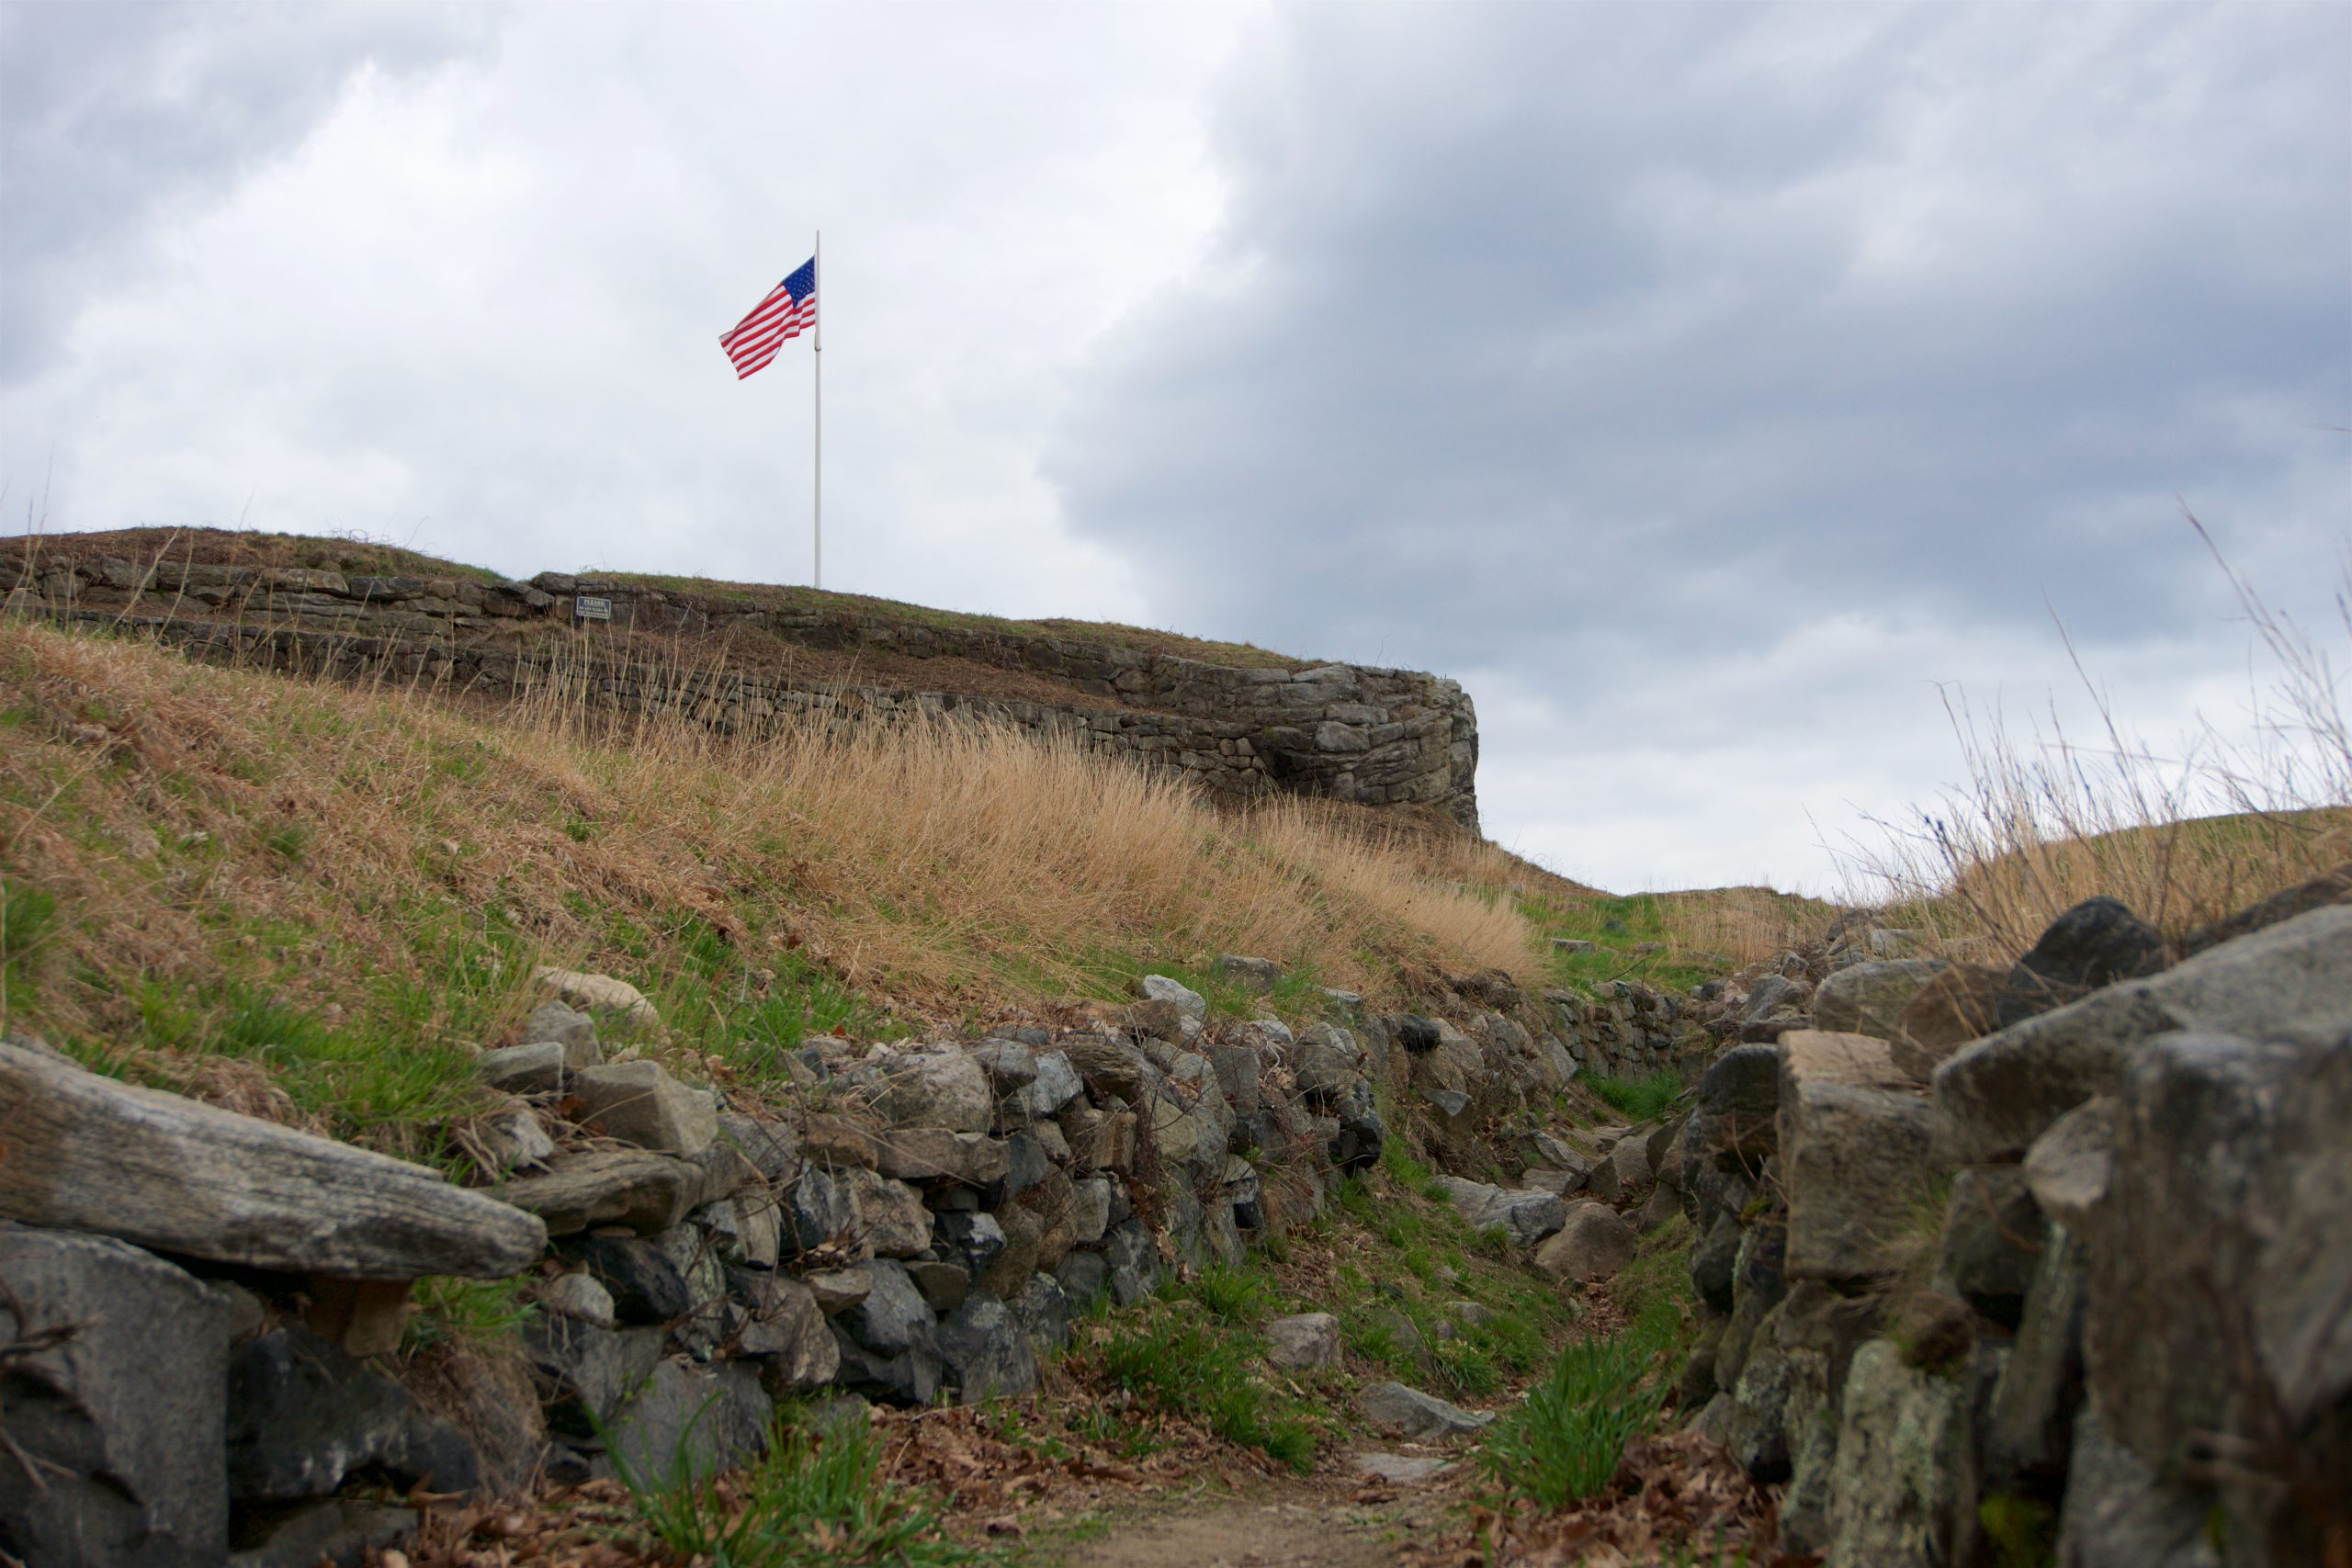 Fort Griswold